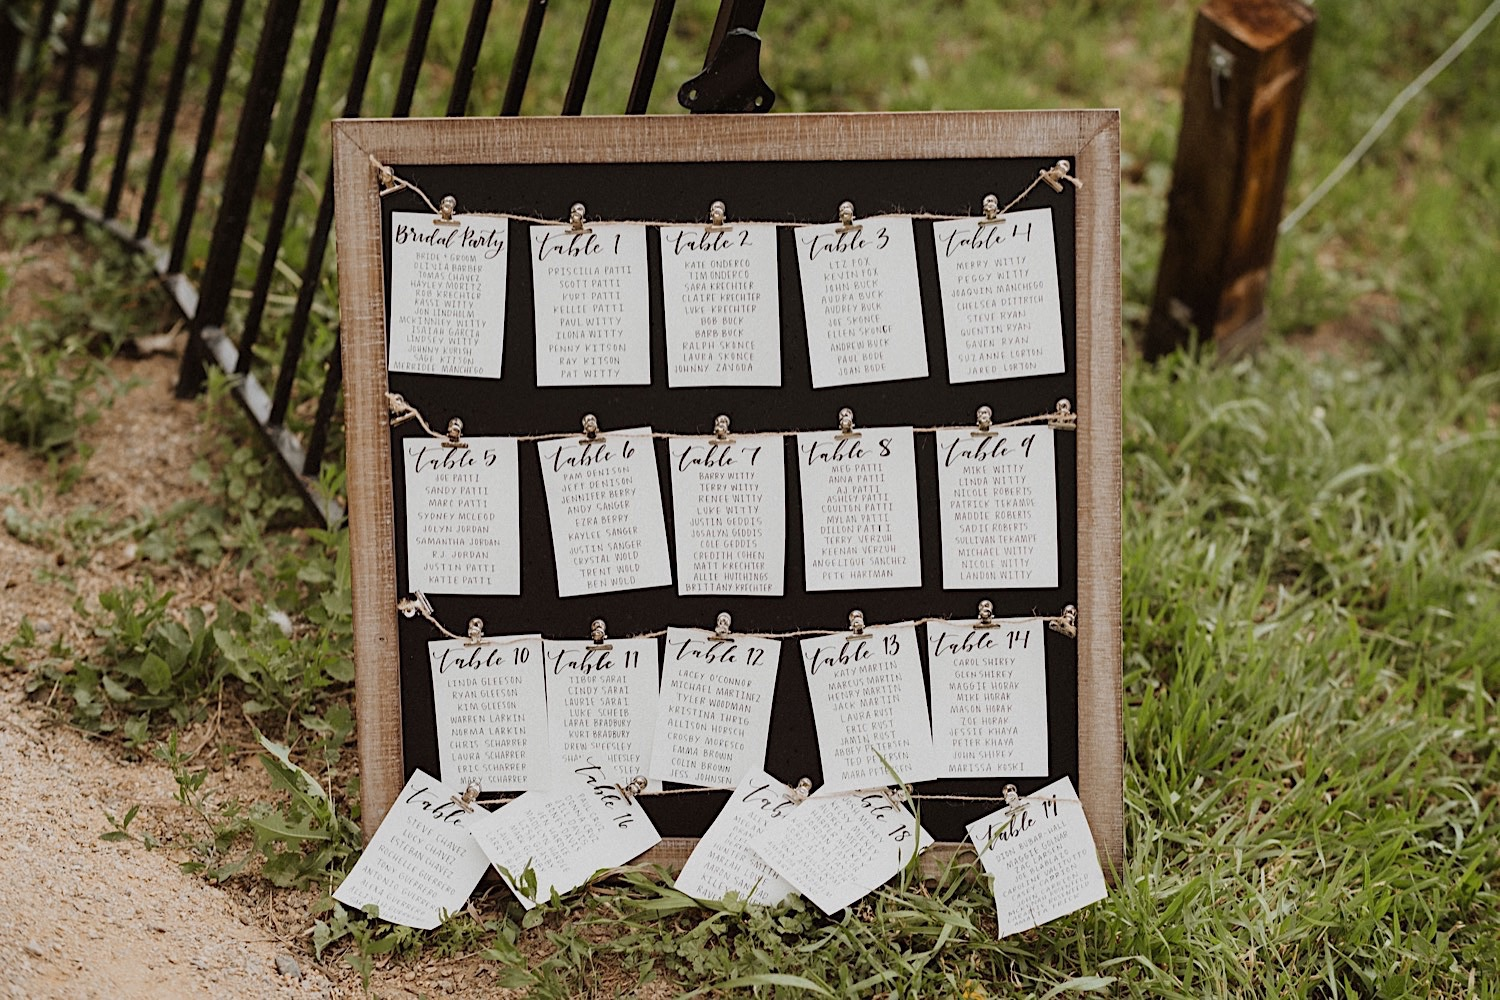 Stonewall Farm Wedding, Colorado Wedding Photographer, Berthoud Wedding Photographer, Fort Collins Wedding Photographer, Colorado Wedding, Colorado Farm Wedding, Colorado Wedding Ideas, Colorado Wedding Inspiration, Wedding ideas, Wedding photography, Wedding inspiration, Farm Wedding, Unique Wedding Ideas, Wedding Photos, Wedding Reception, Wedding Seating Chart, Picture frame seating chart, Clothes Pin Seating Chart